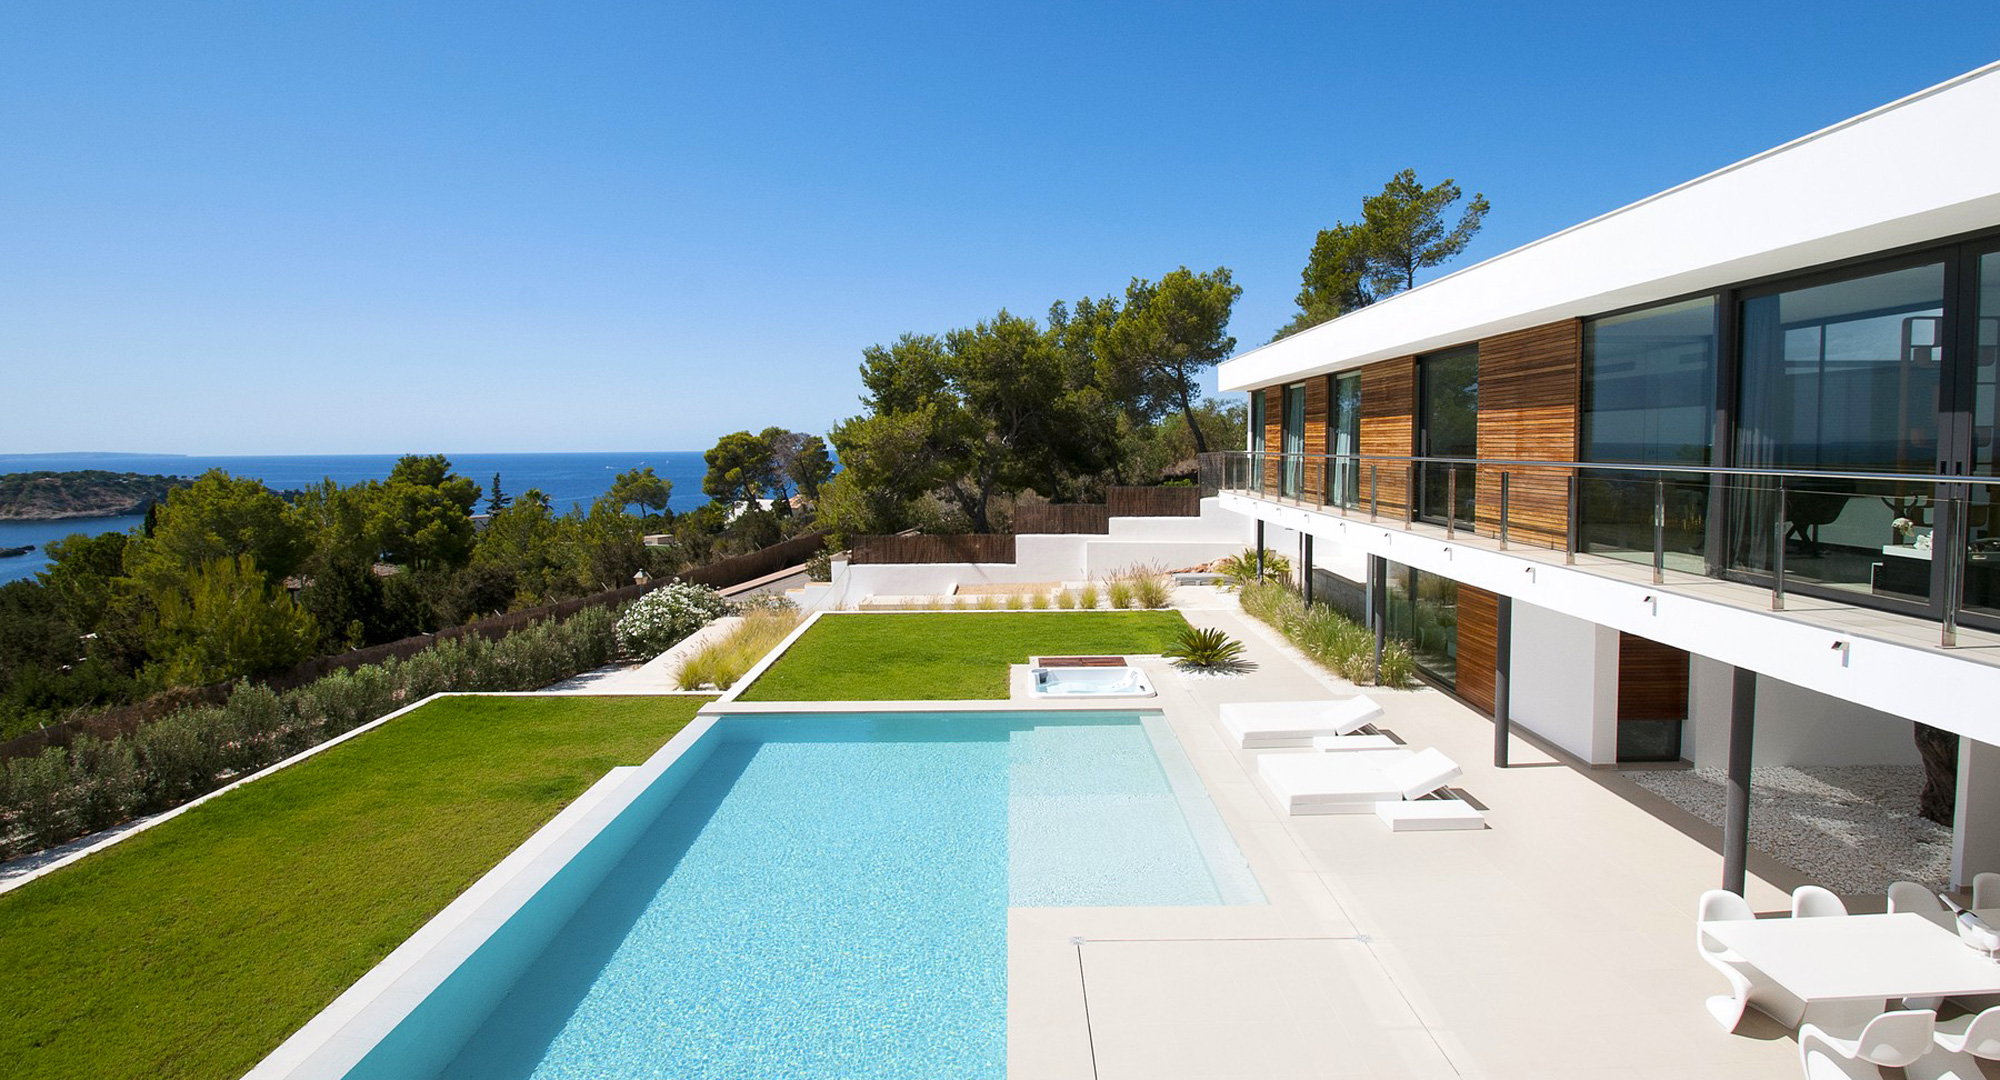 IBIZA LOW COST - Ibiza Vip Villas - Villas with swimming ...